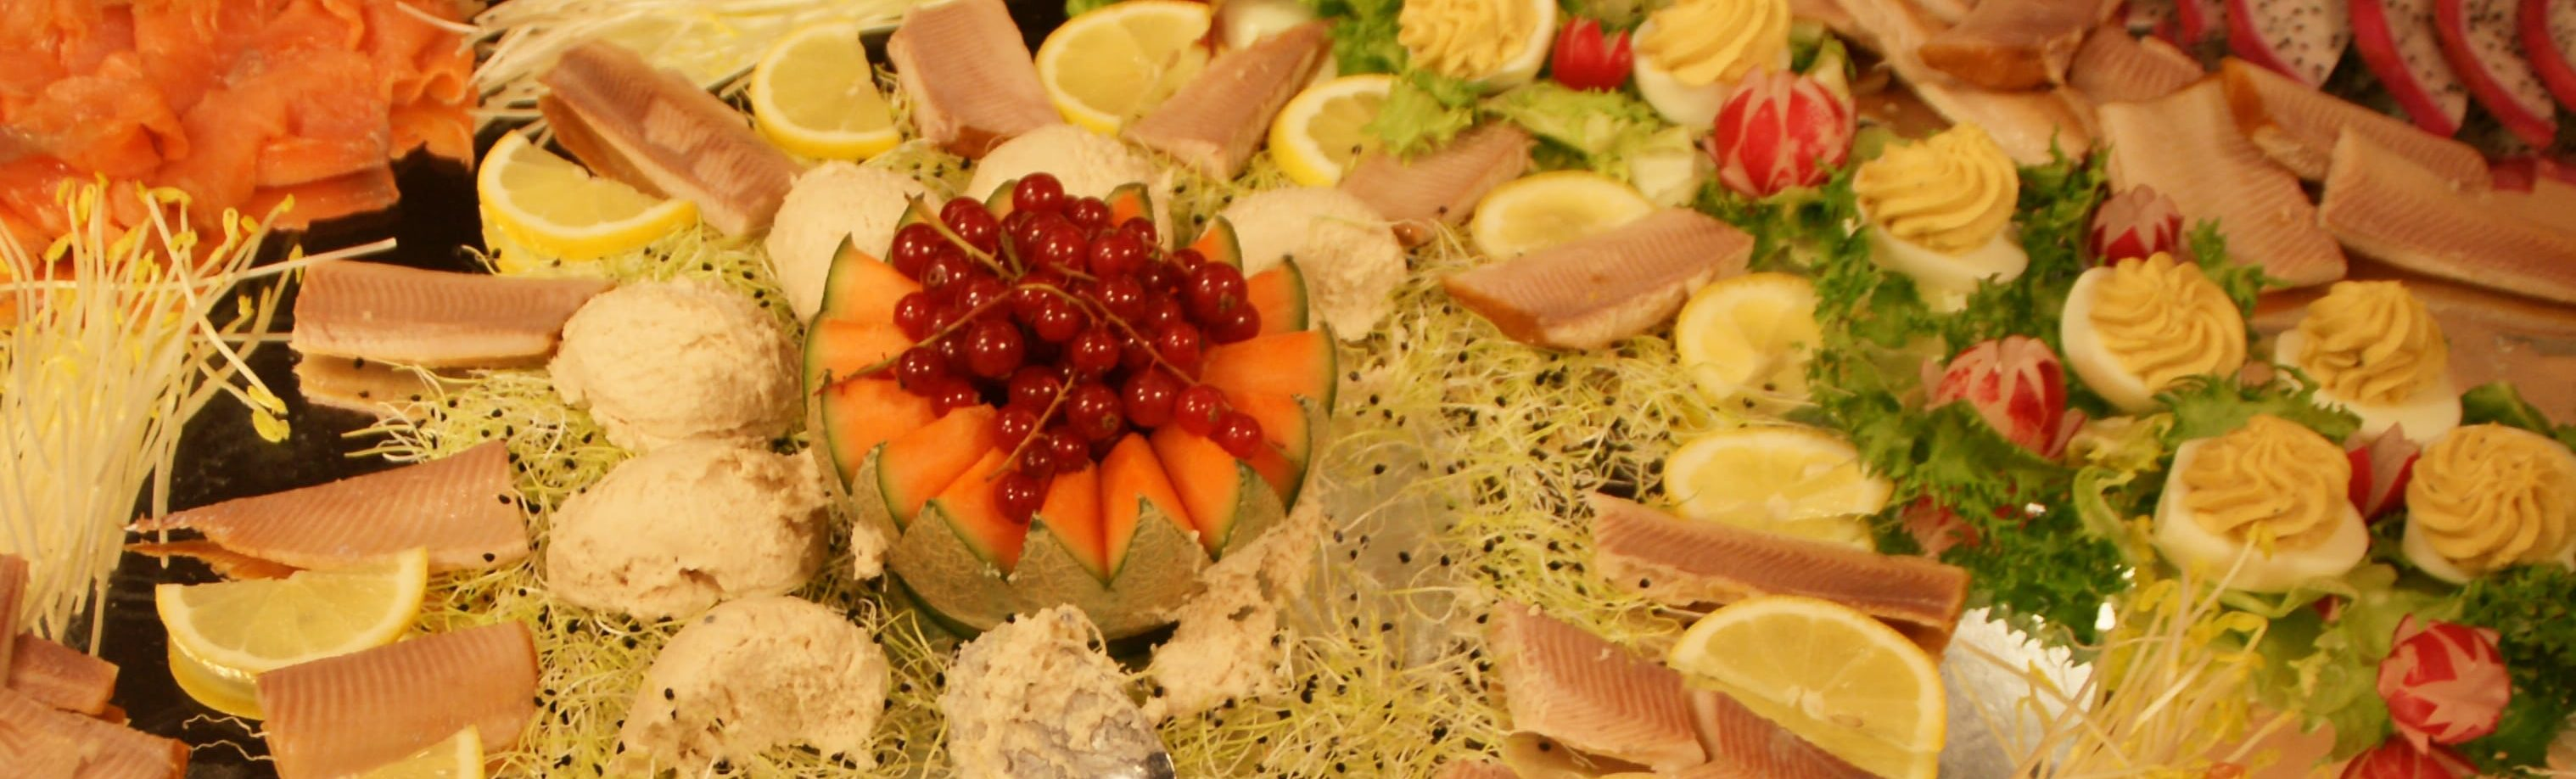 Romana Catering Partyservice 022